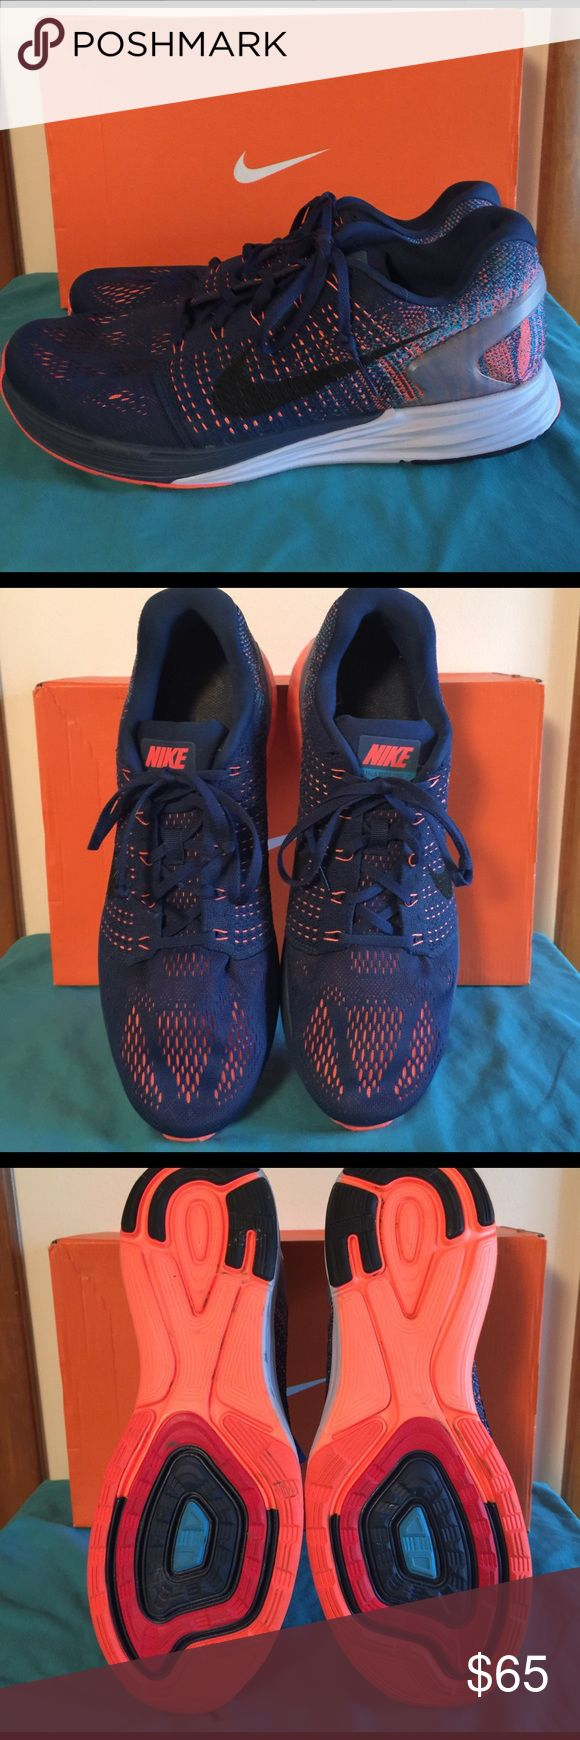 Nike Lunarglide 7 Mens size 13 Nike Lunarglides. In great condition and worn only a hand full of times. Nike Shoes Athletic Shoes